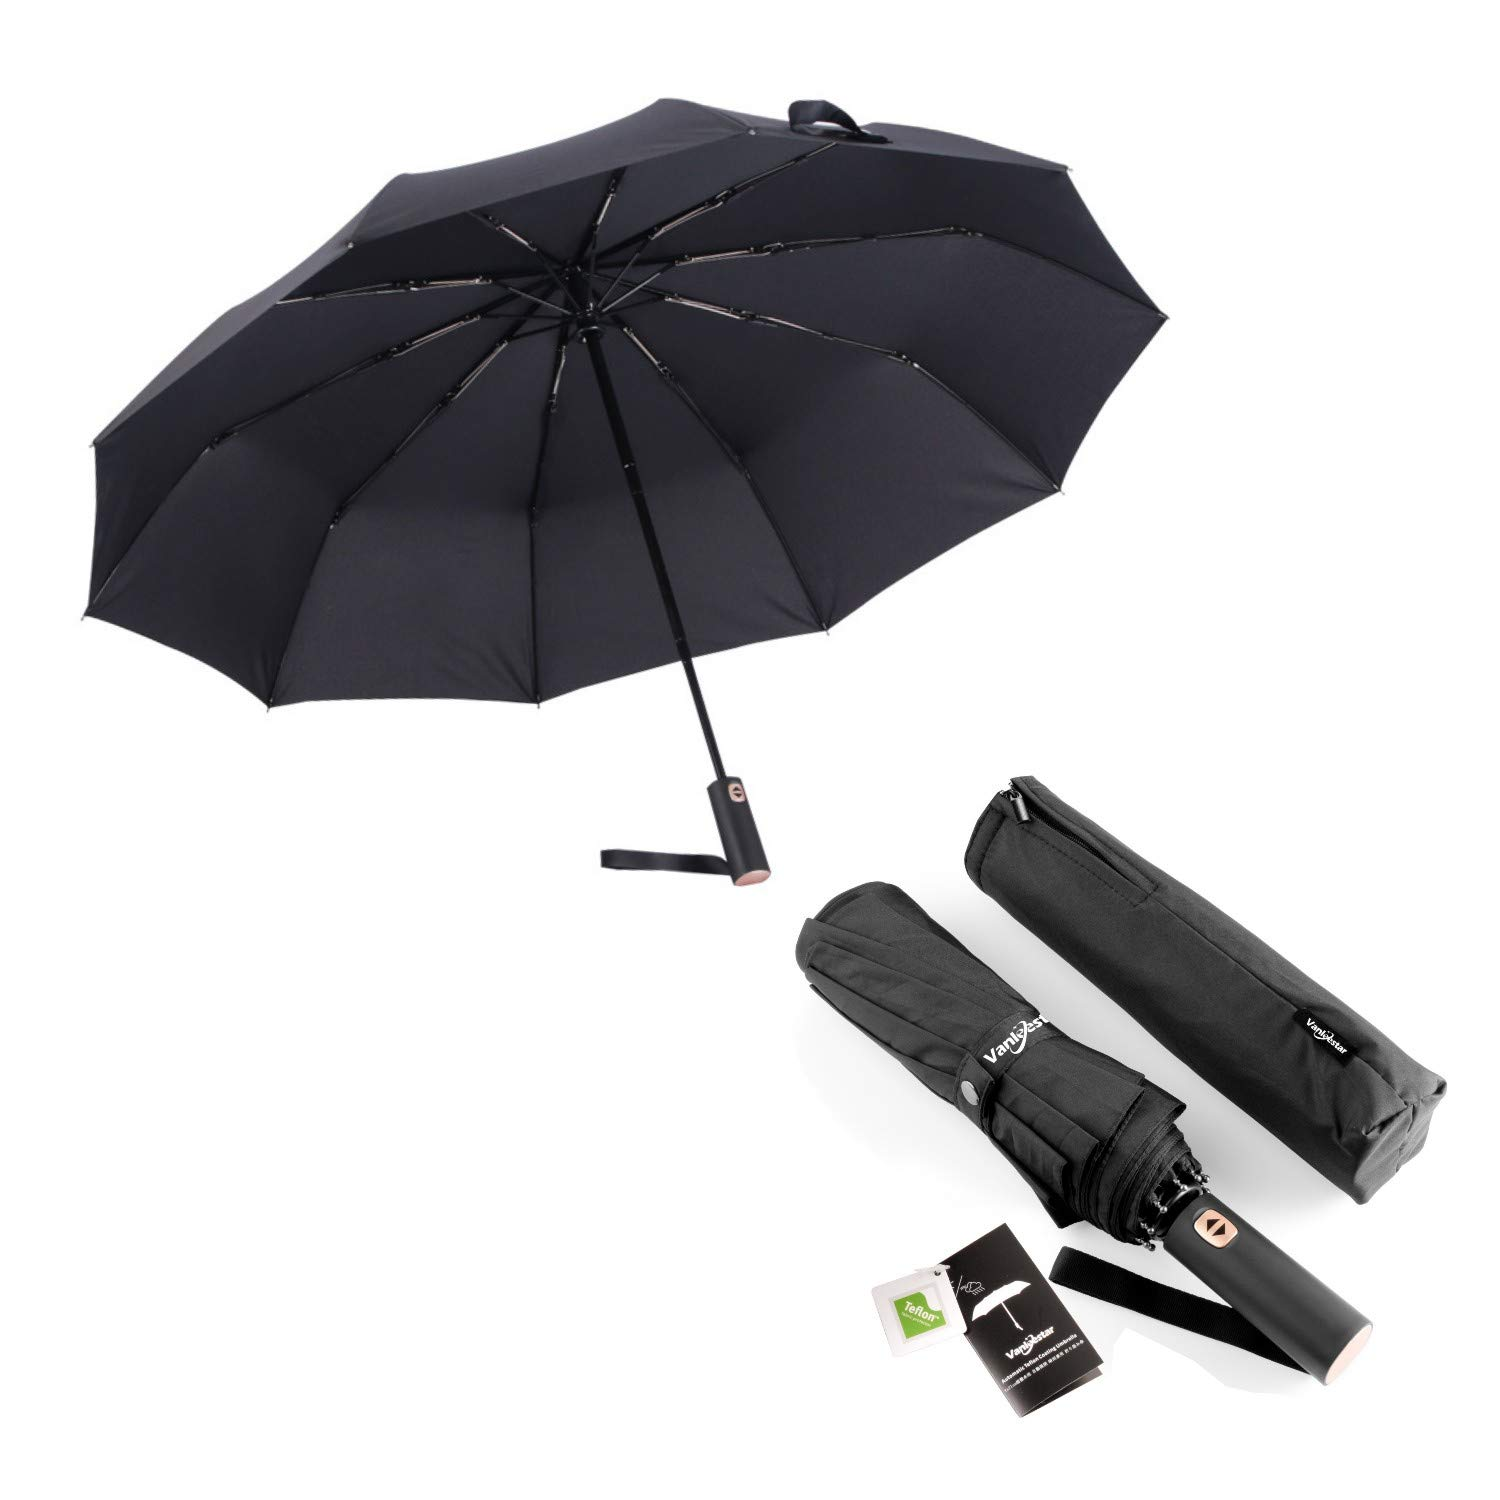 Auto Open Close Umbrella, Lengthened Handle Teflon Umbrella Fast Drying 46 Inch Brolly 10 Strong Ribs w/Zipper Pouch for Men Women(Black)